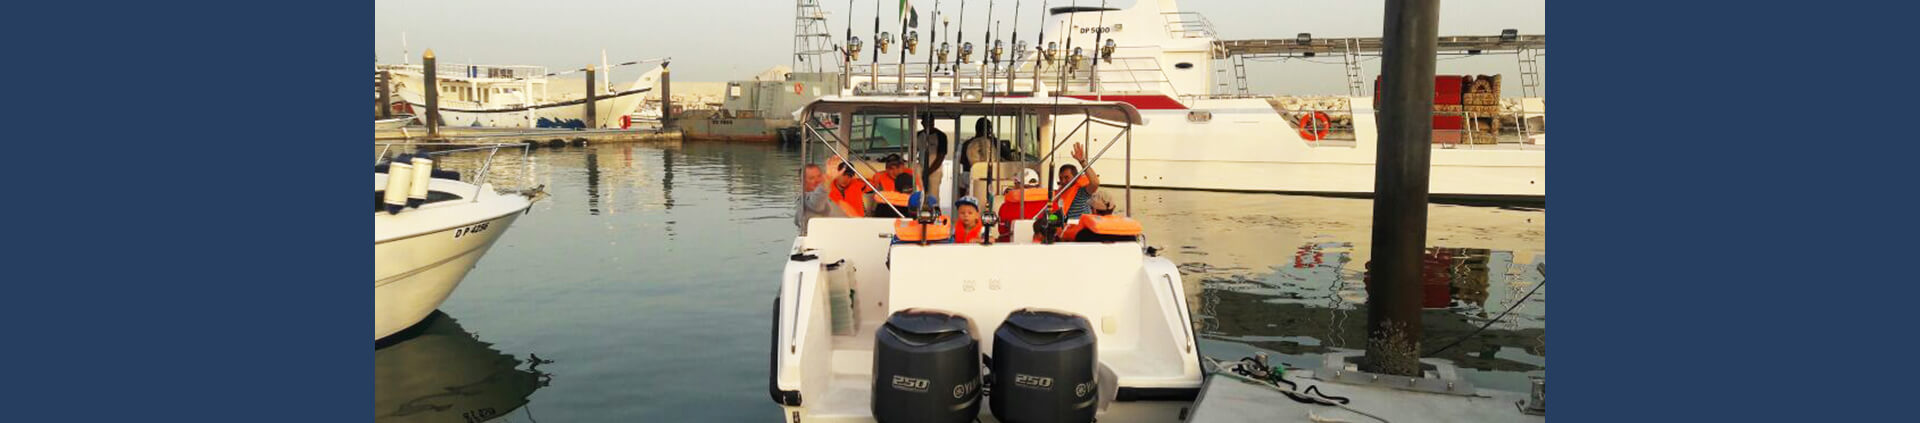 Rent Boat for Fishing in Dubai